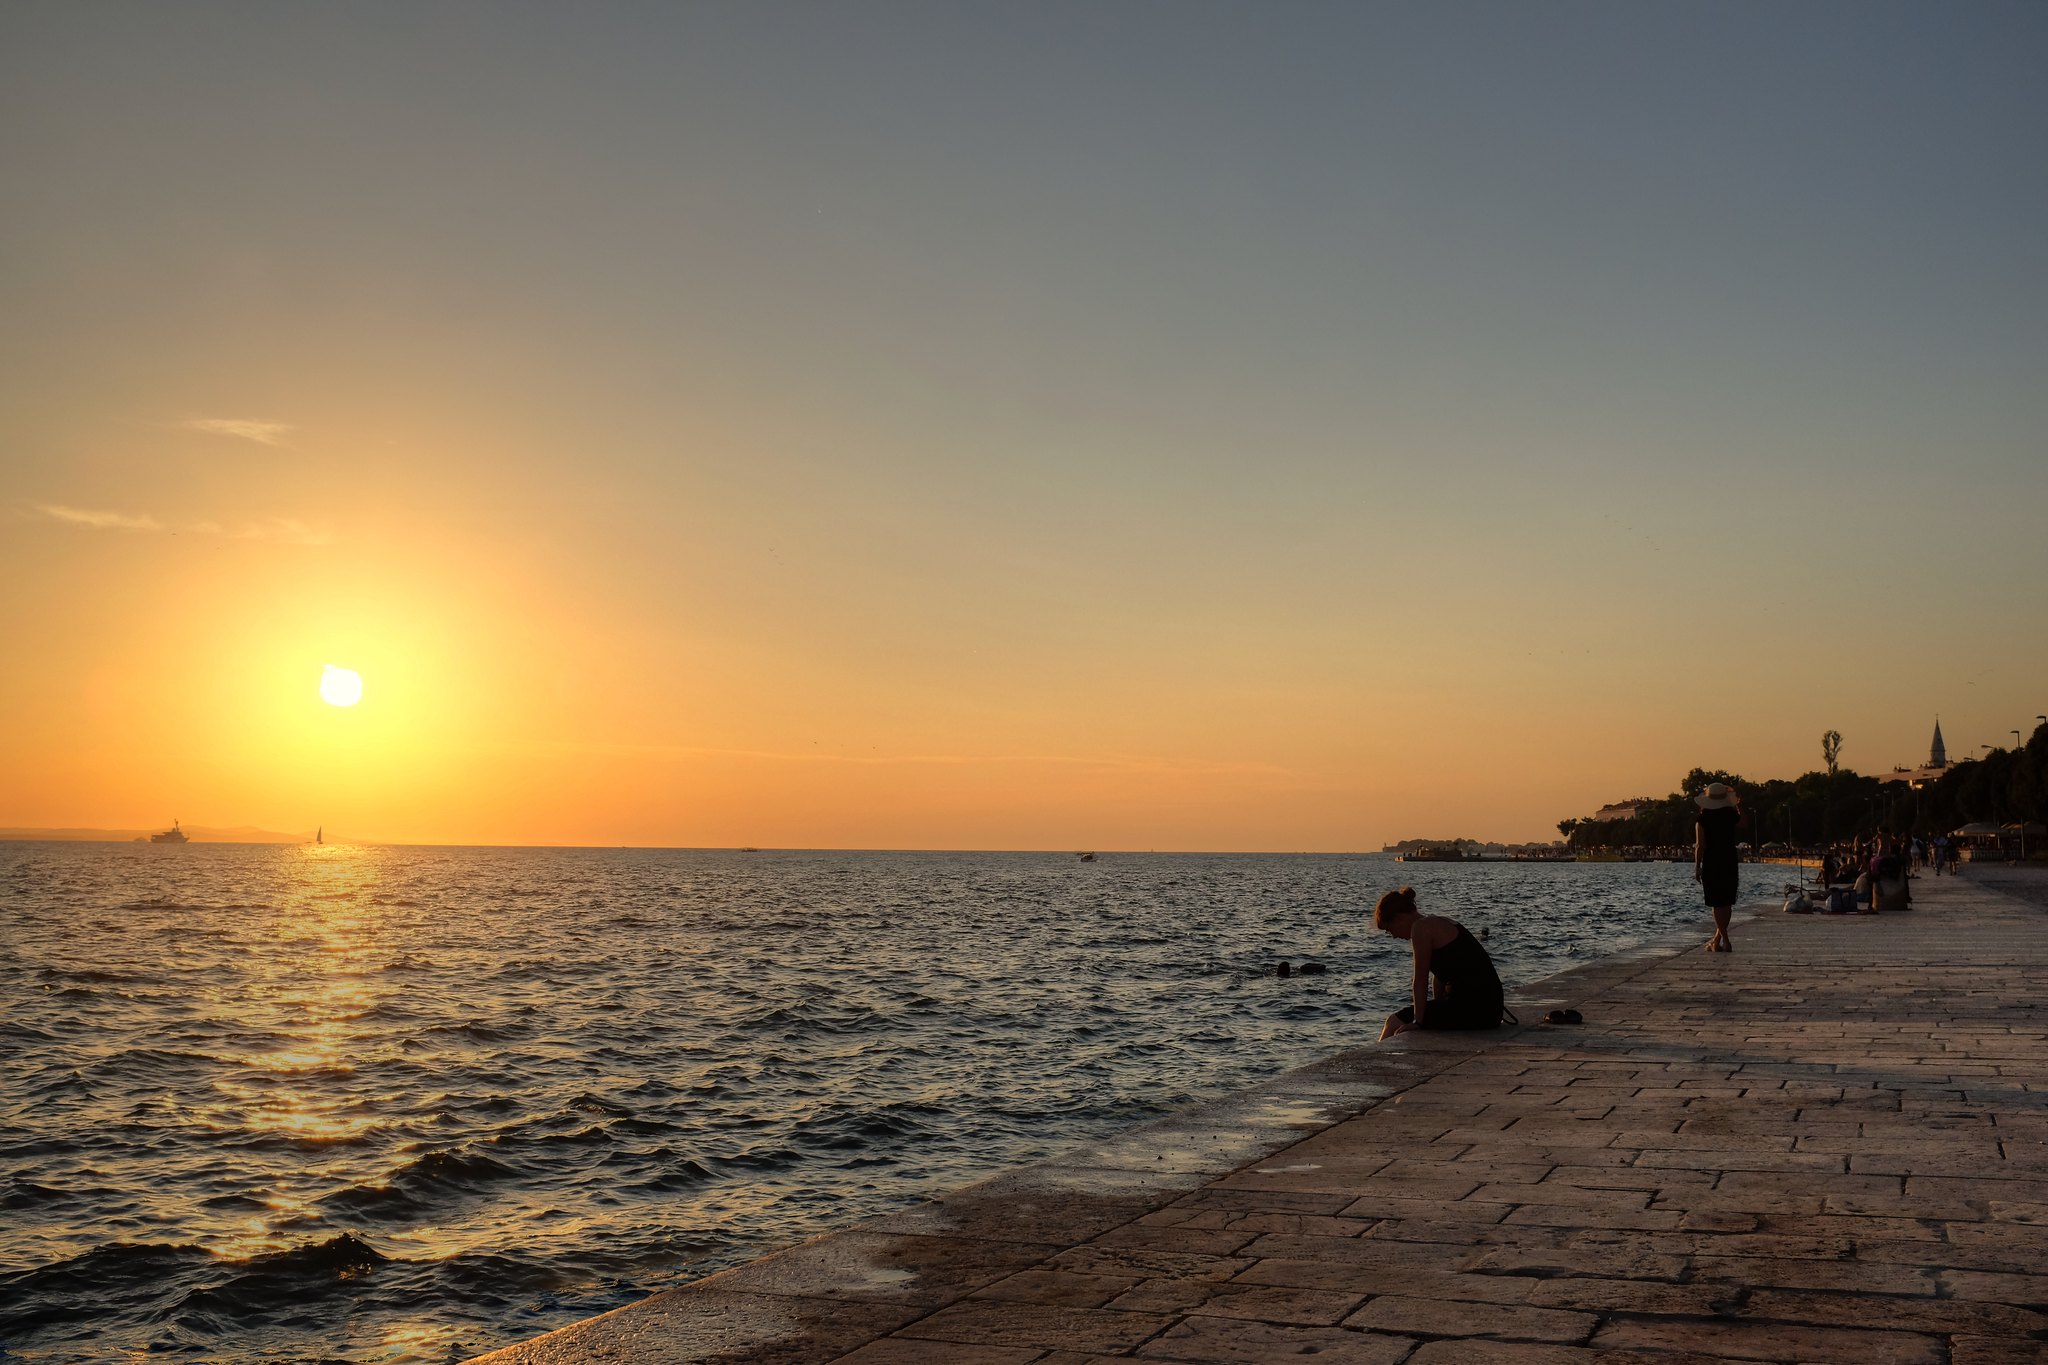 Sunset at Zadar, Dalmatia, Croatia